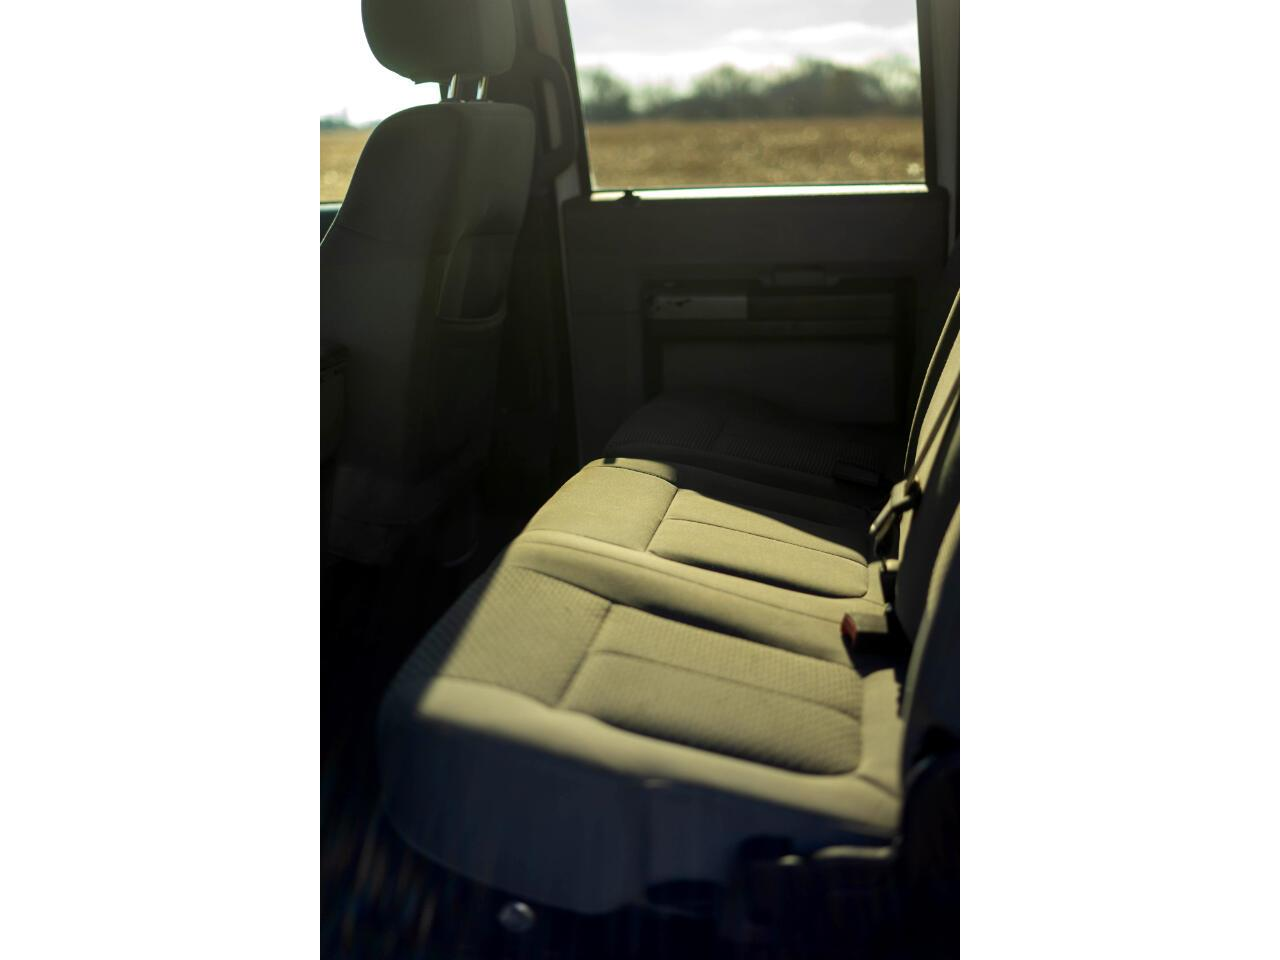 2014 Ford F250 (CC-1413207) for sale in Cicero, Indiana